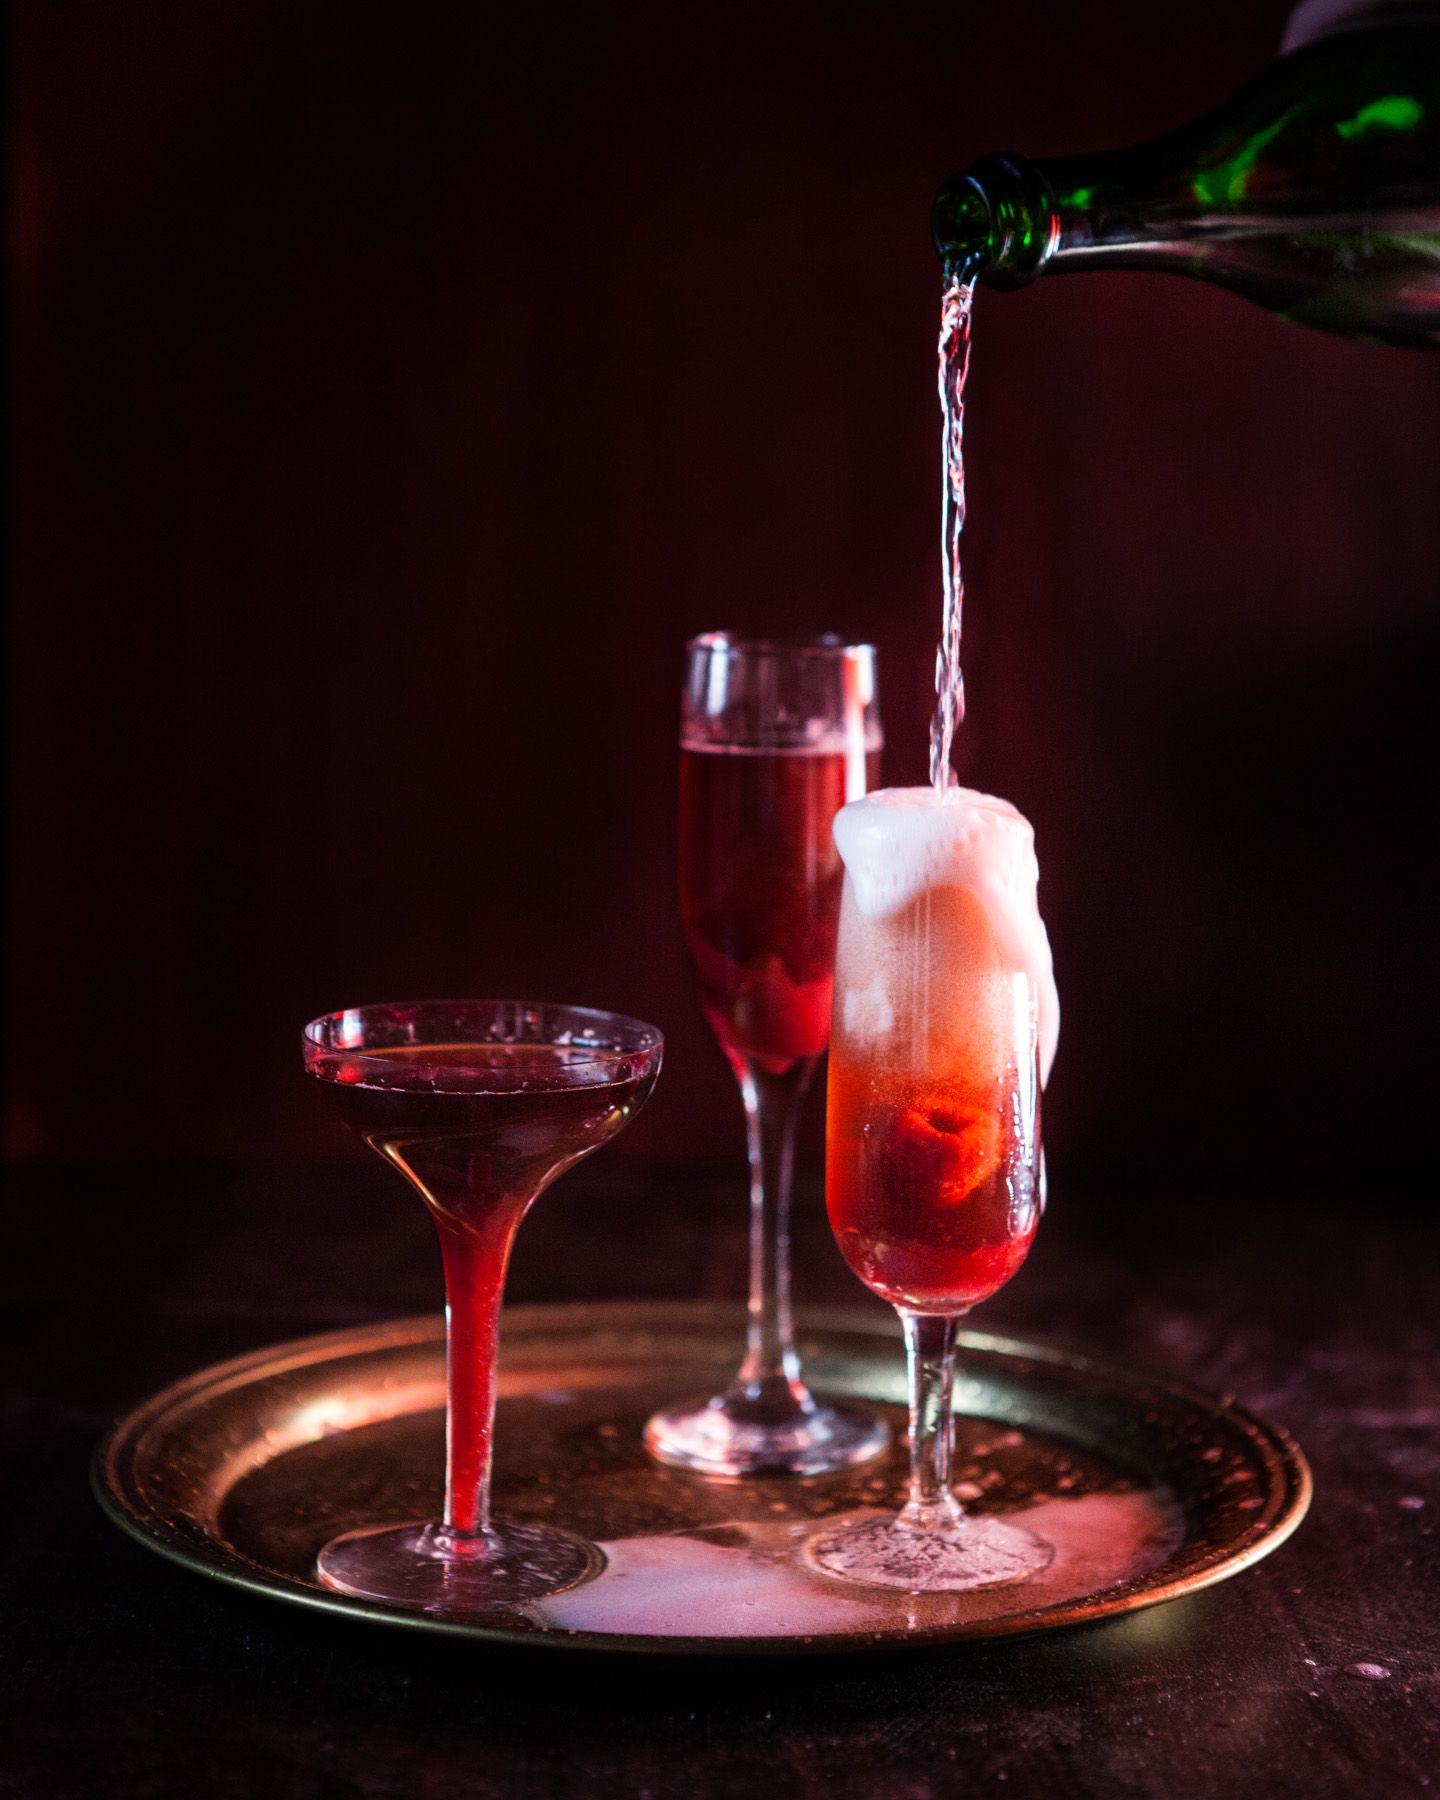 Pin By Mike Sipe On Food Raspberry Champagne Cocktails Champagne Recipes Cocktails Delicious Cocktails